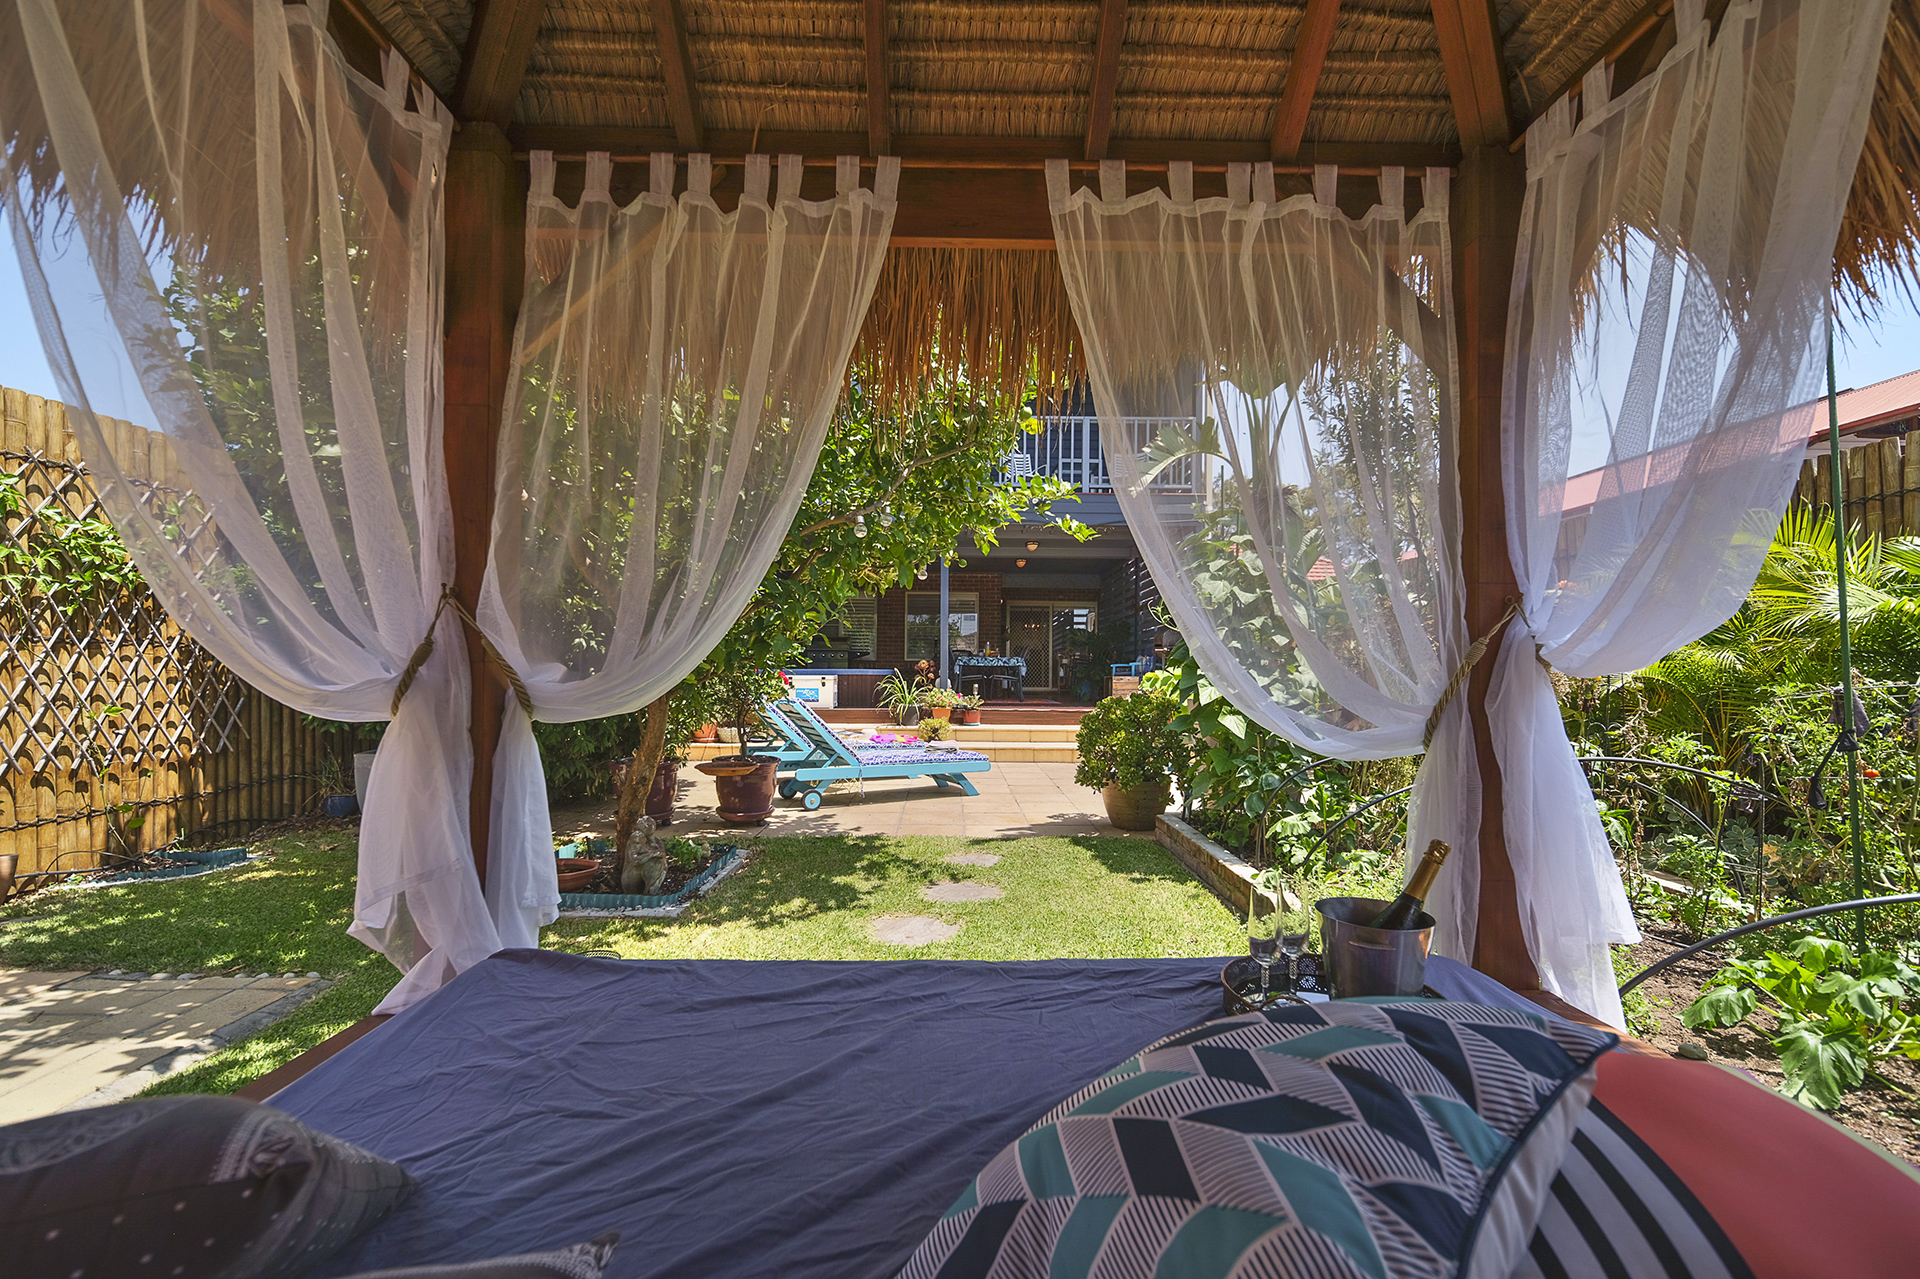 Bali Day Bed 2